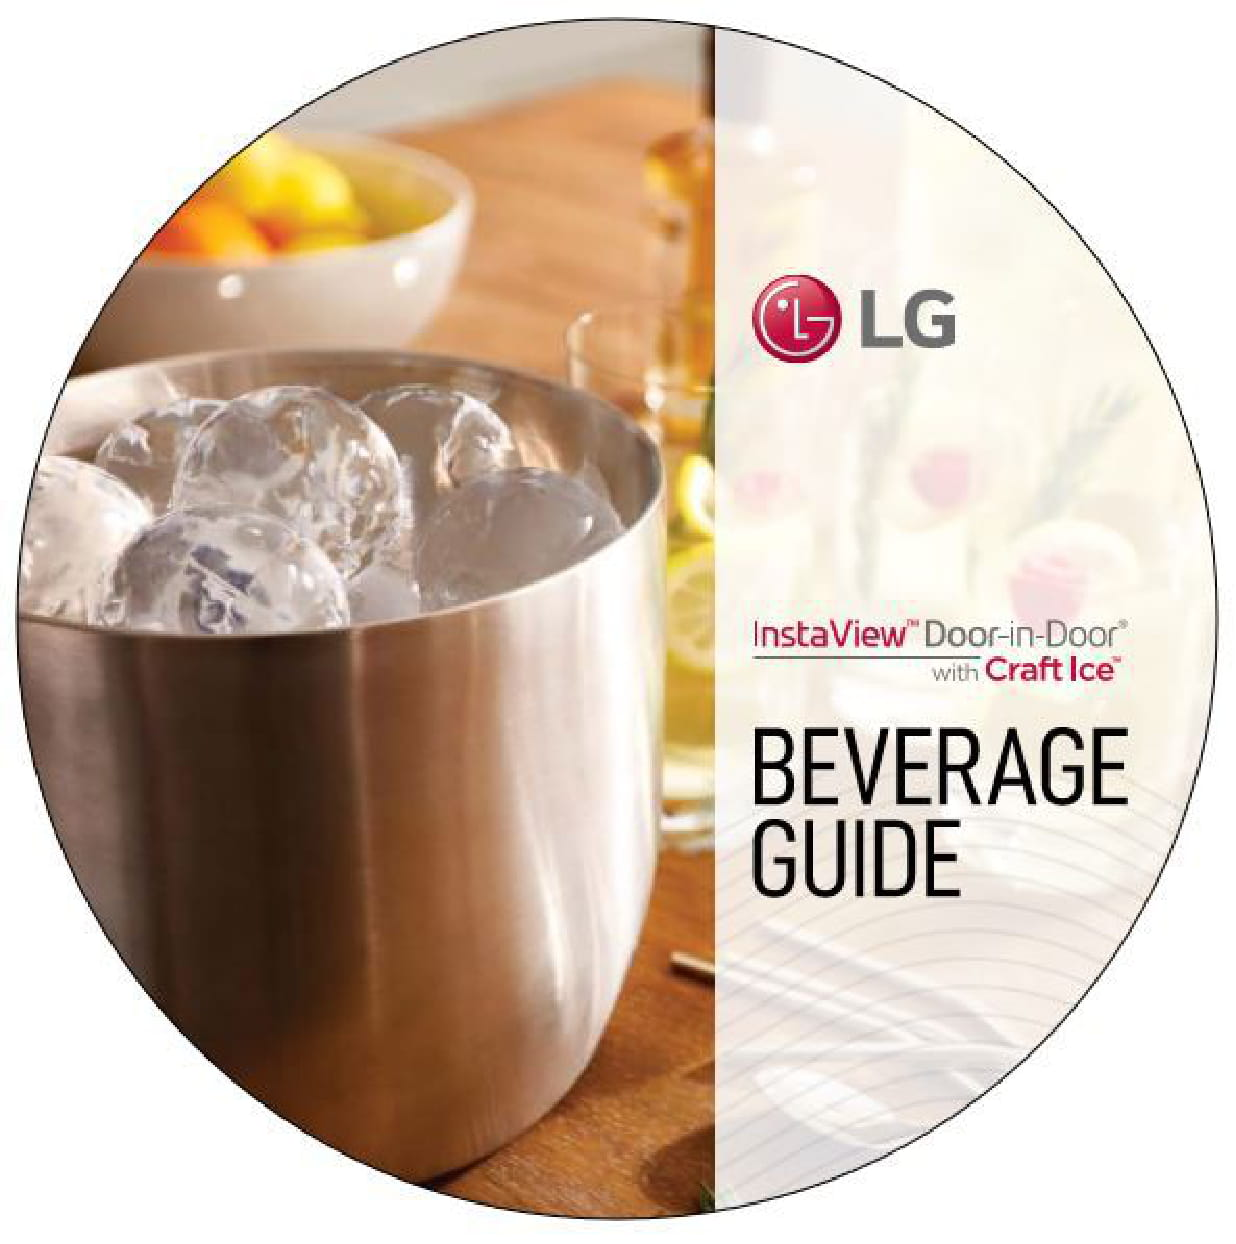 Enjoy Craft Ice™ with one of the recipes from the beverage guide. Ranging from coffee to alcoholic drinks!